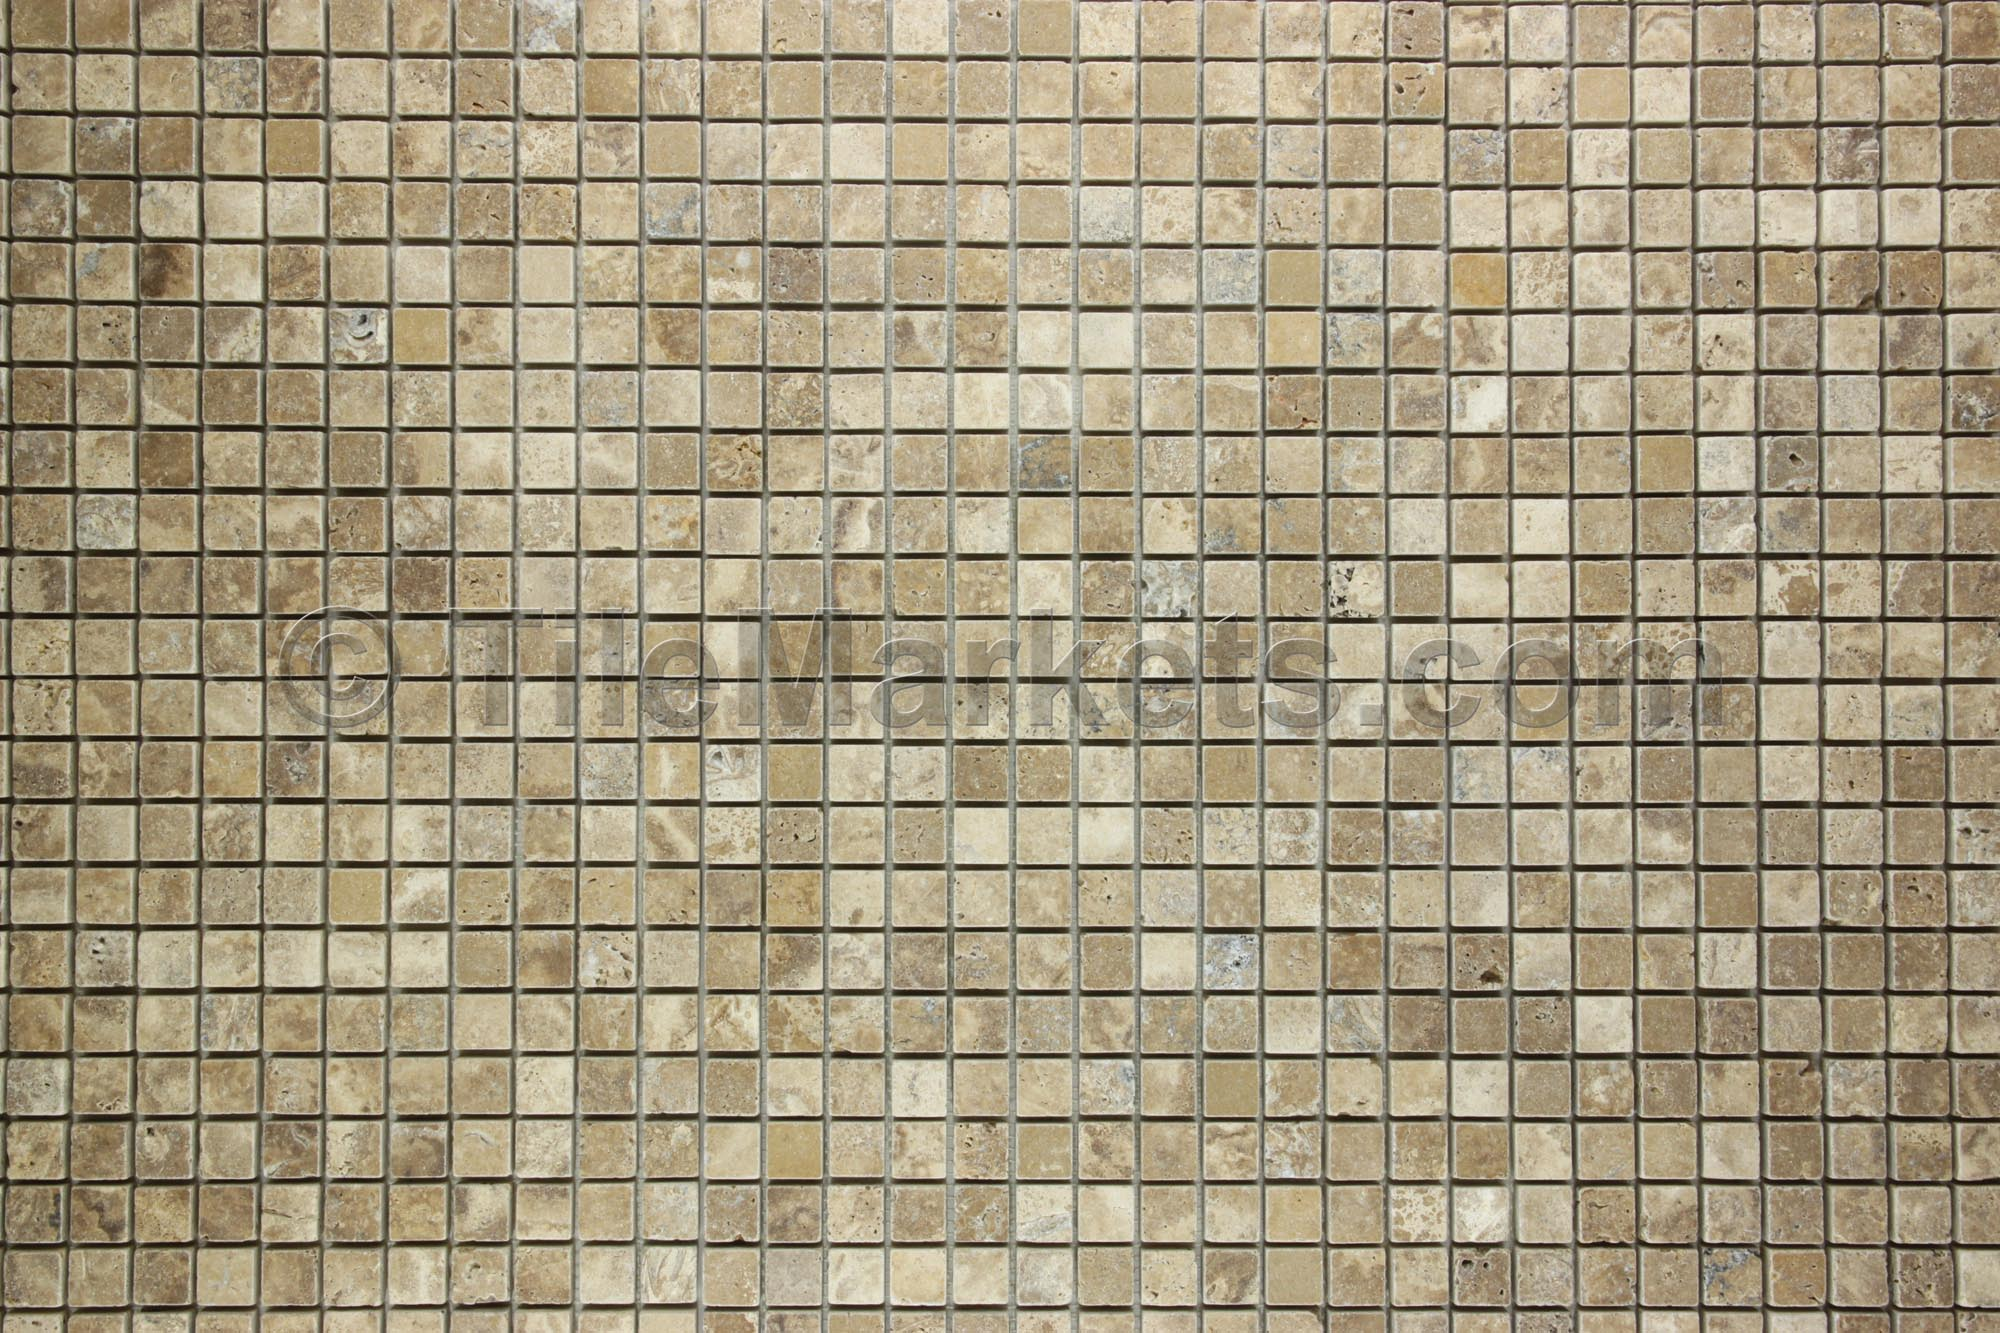 Travertine Mosaic Backsplash Noce 1x1 Tumbled